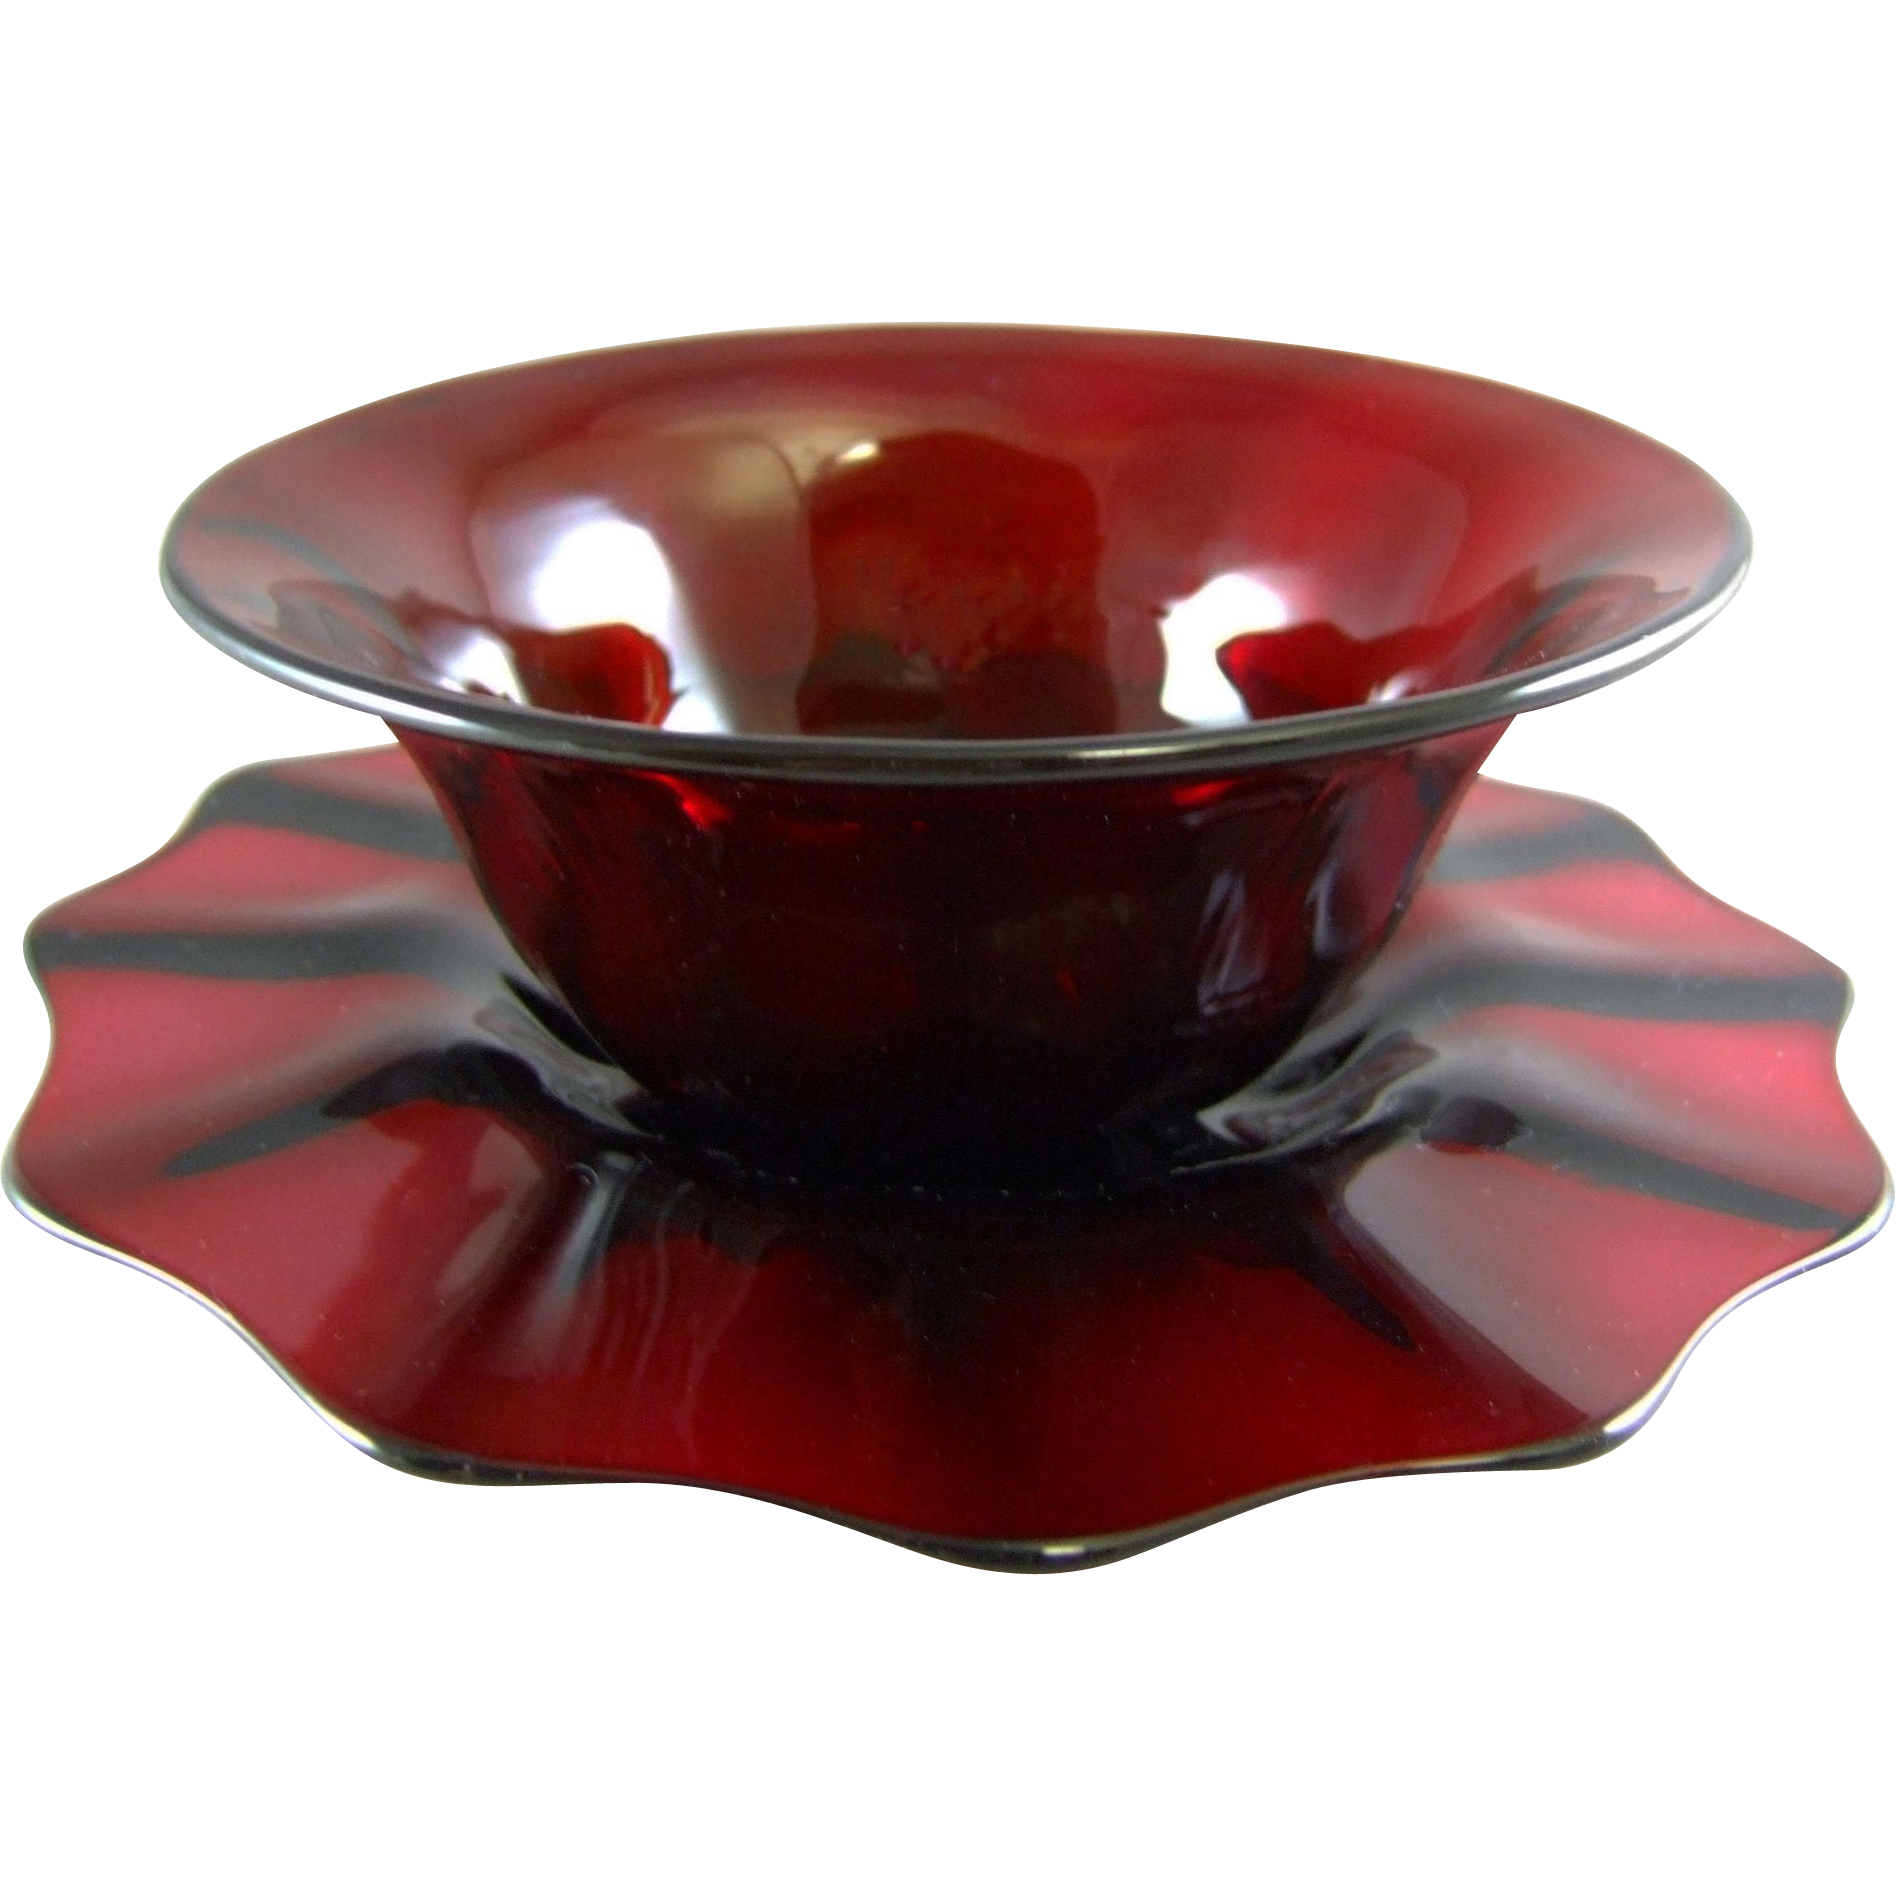 Libbey Amberina Glass Finger Bowl and Underplate